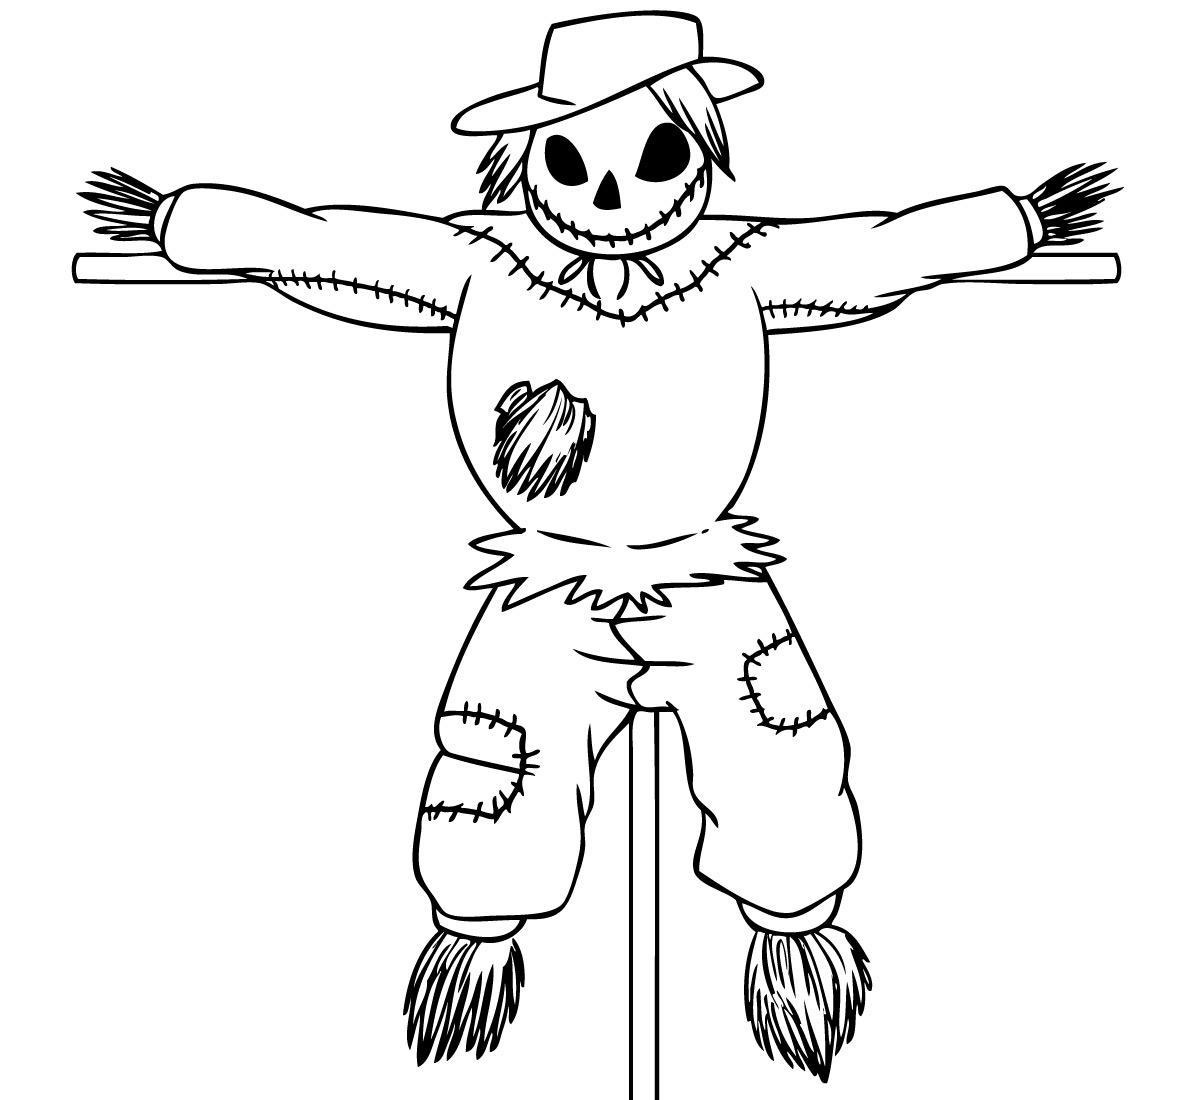 Free Printable Scarecrow Coloring Pages For Kids Scarecrow Coloring Page